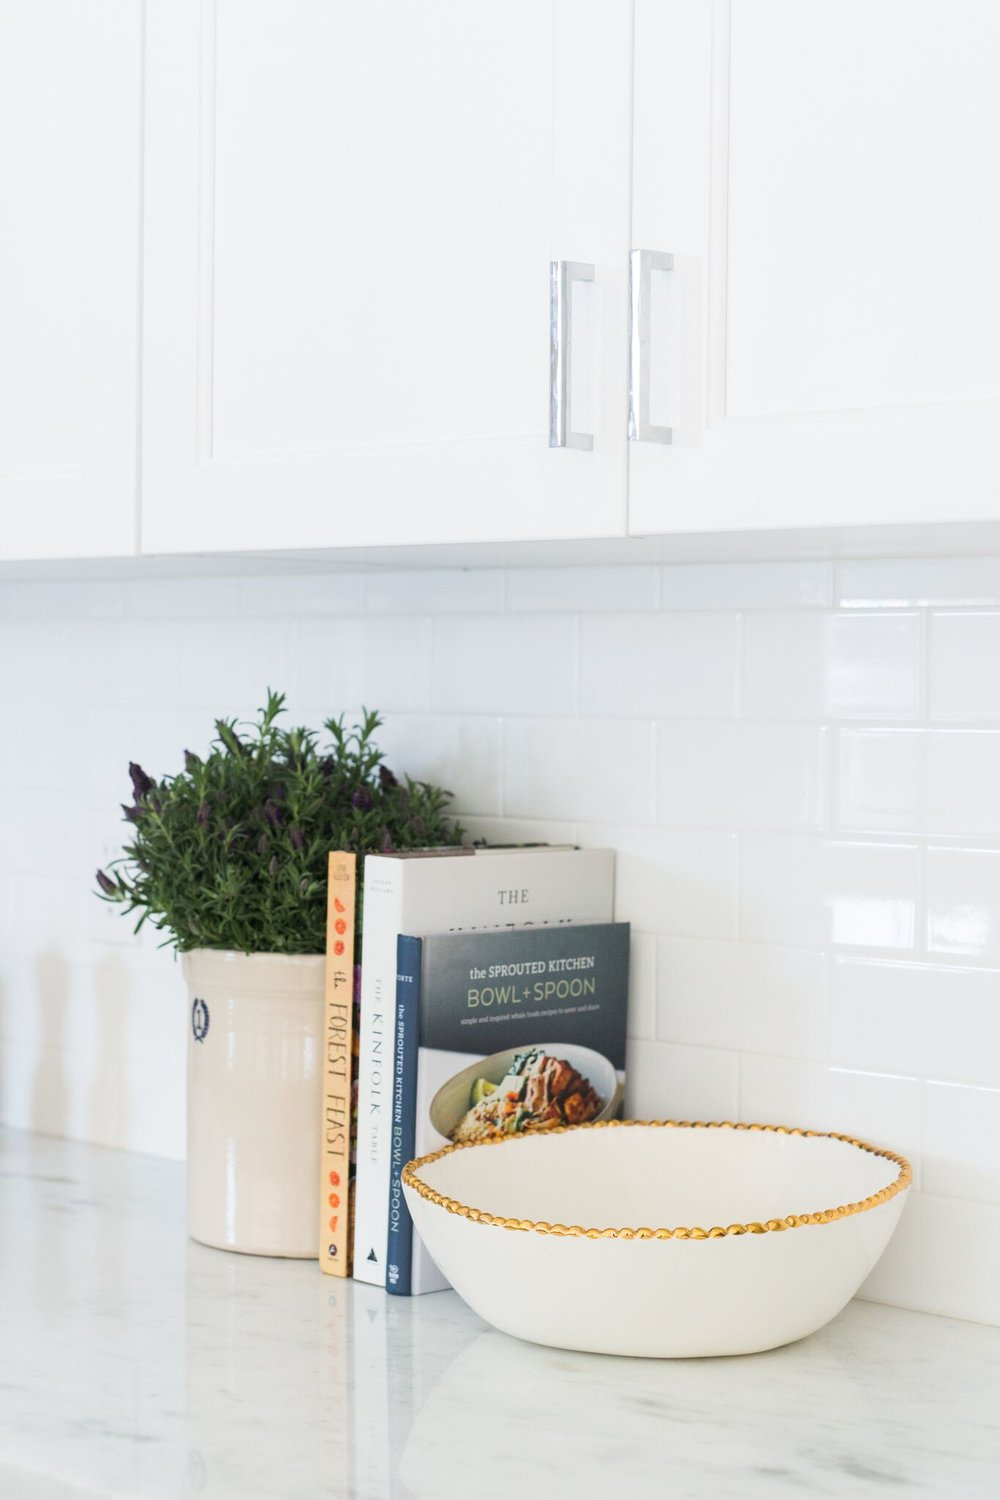 Books and plants on kitchen counter tops